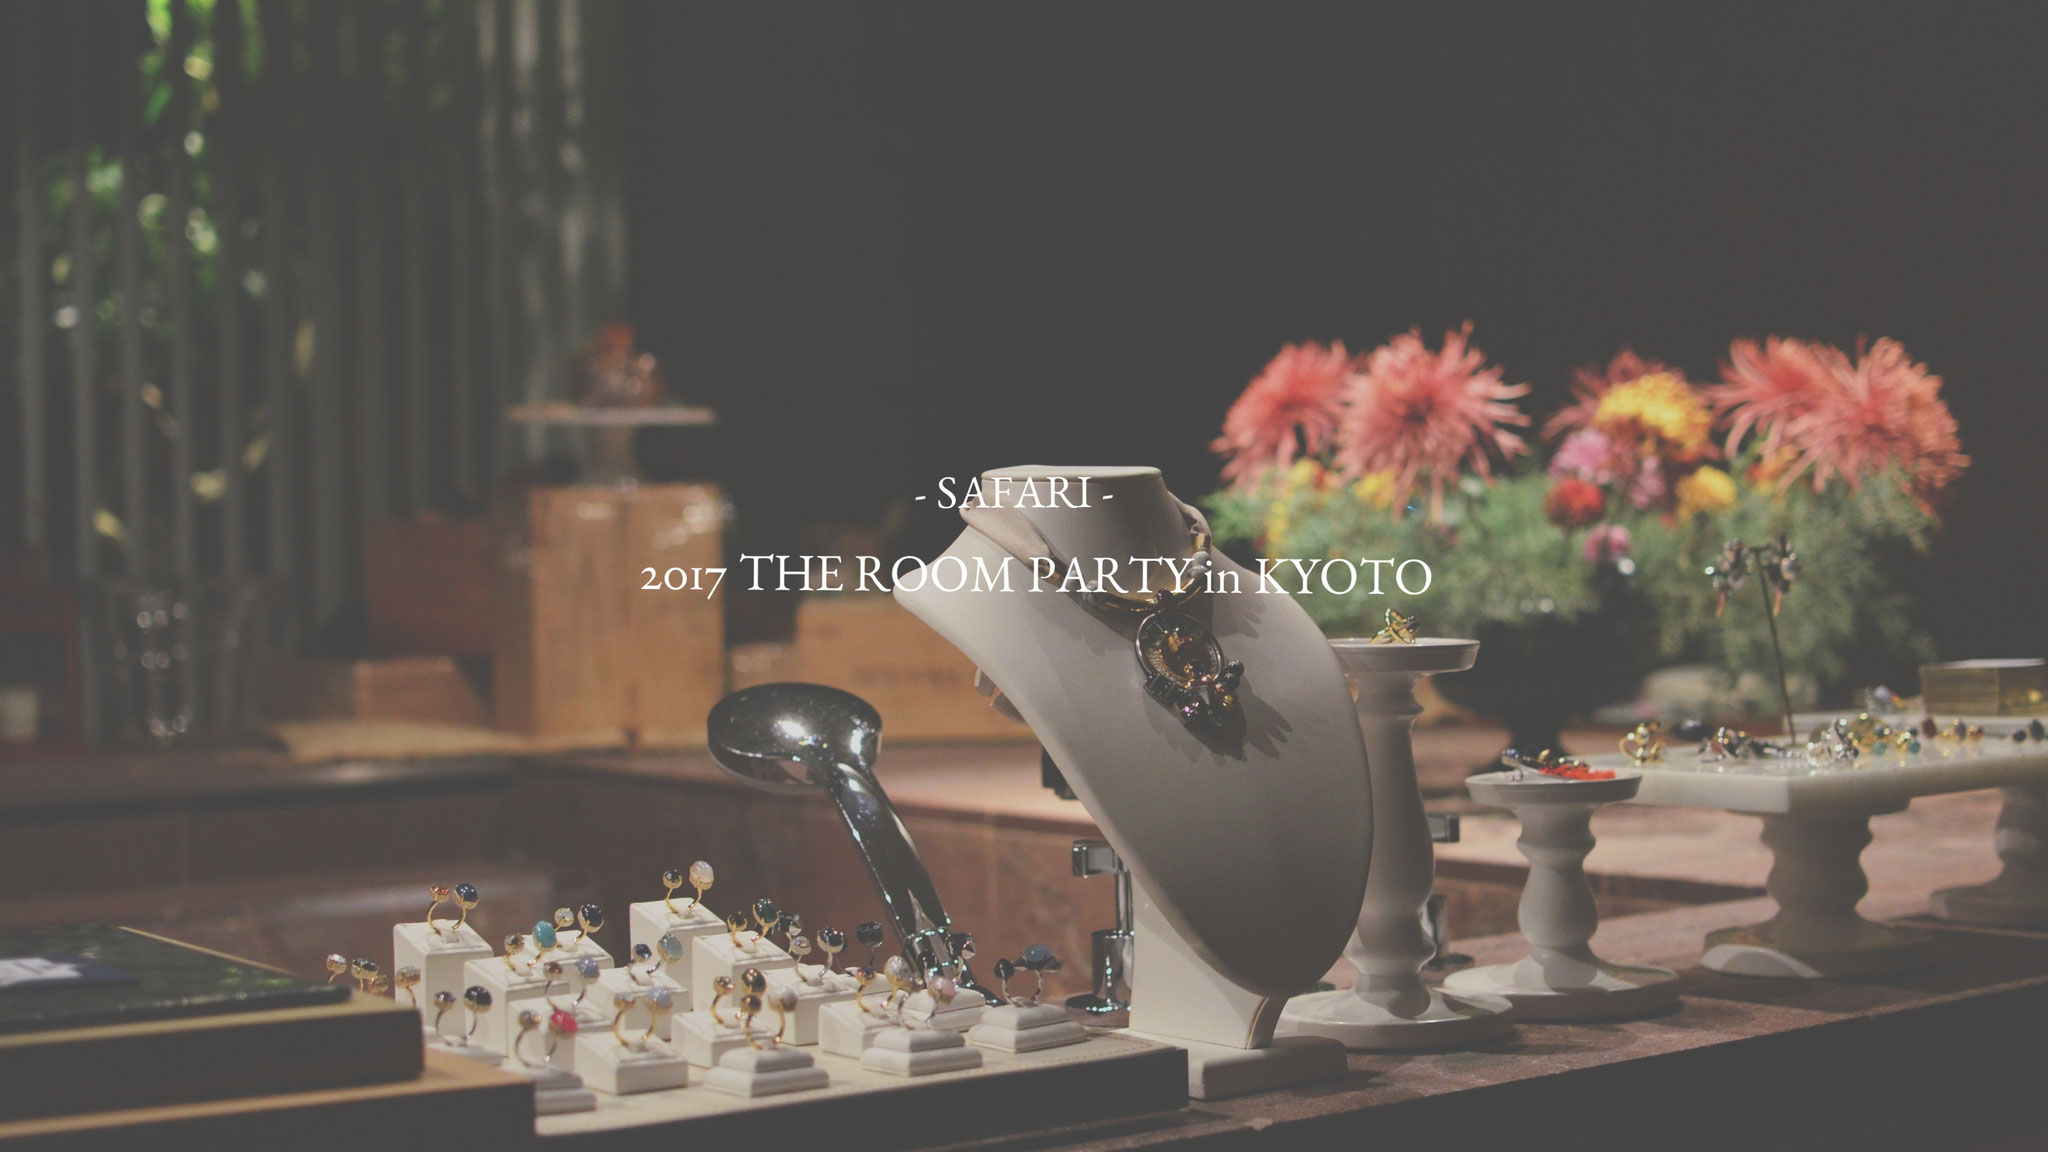 2017 THE ROOM PARTY in KYOTO